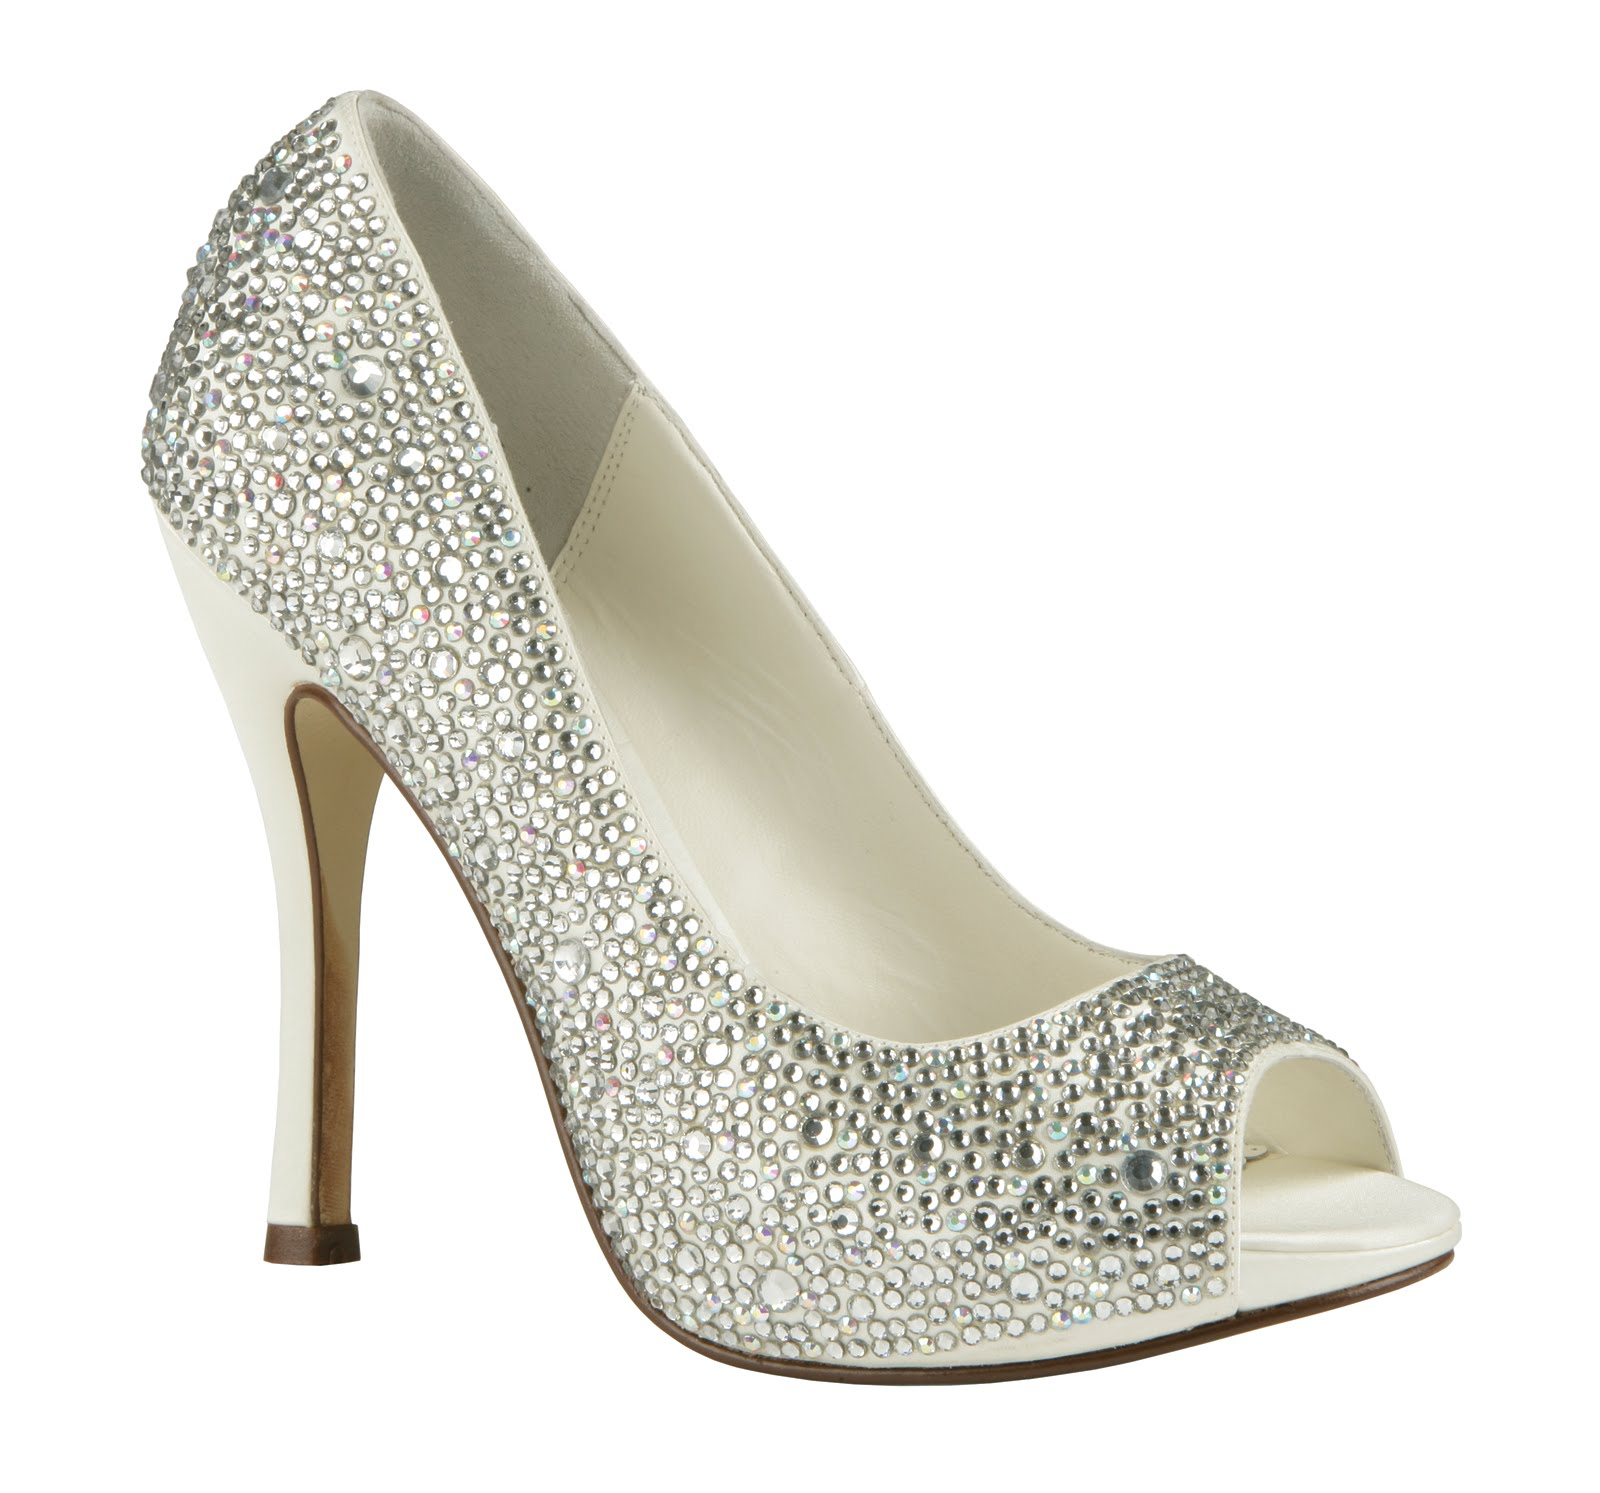 charlize the most popular of the all crystal shoes by benjamin adams